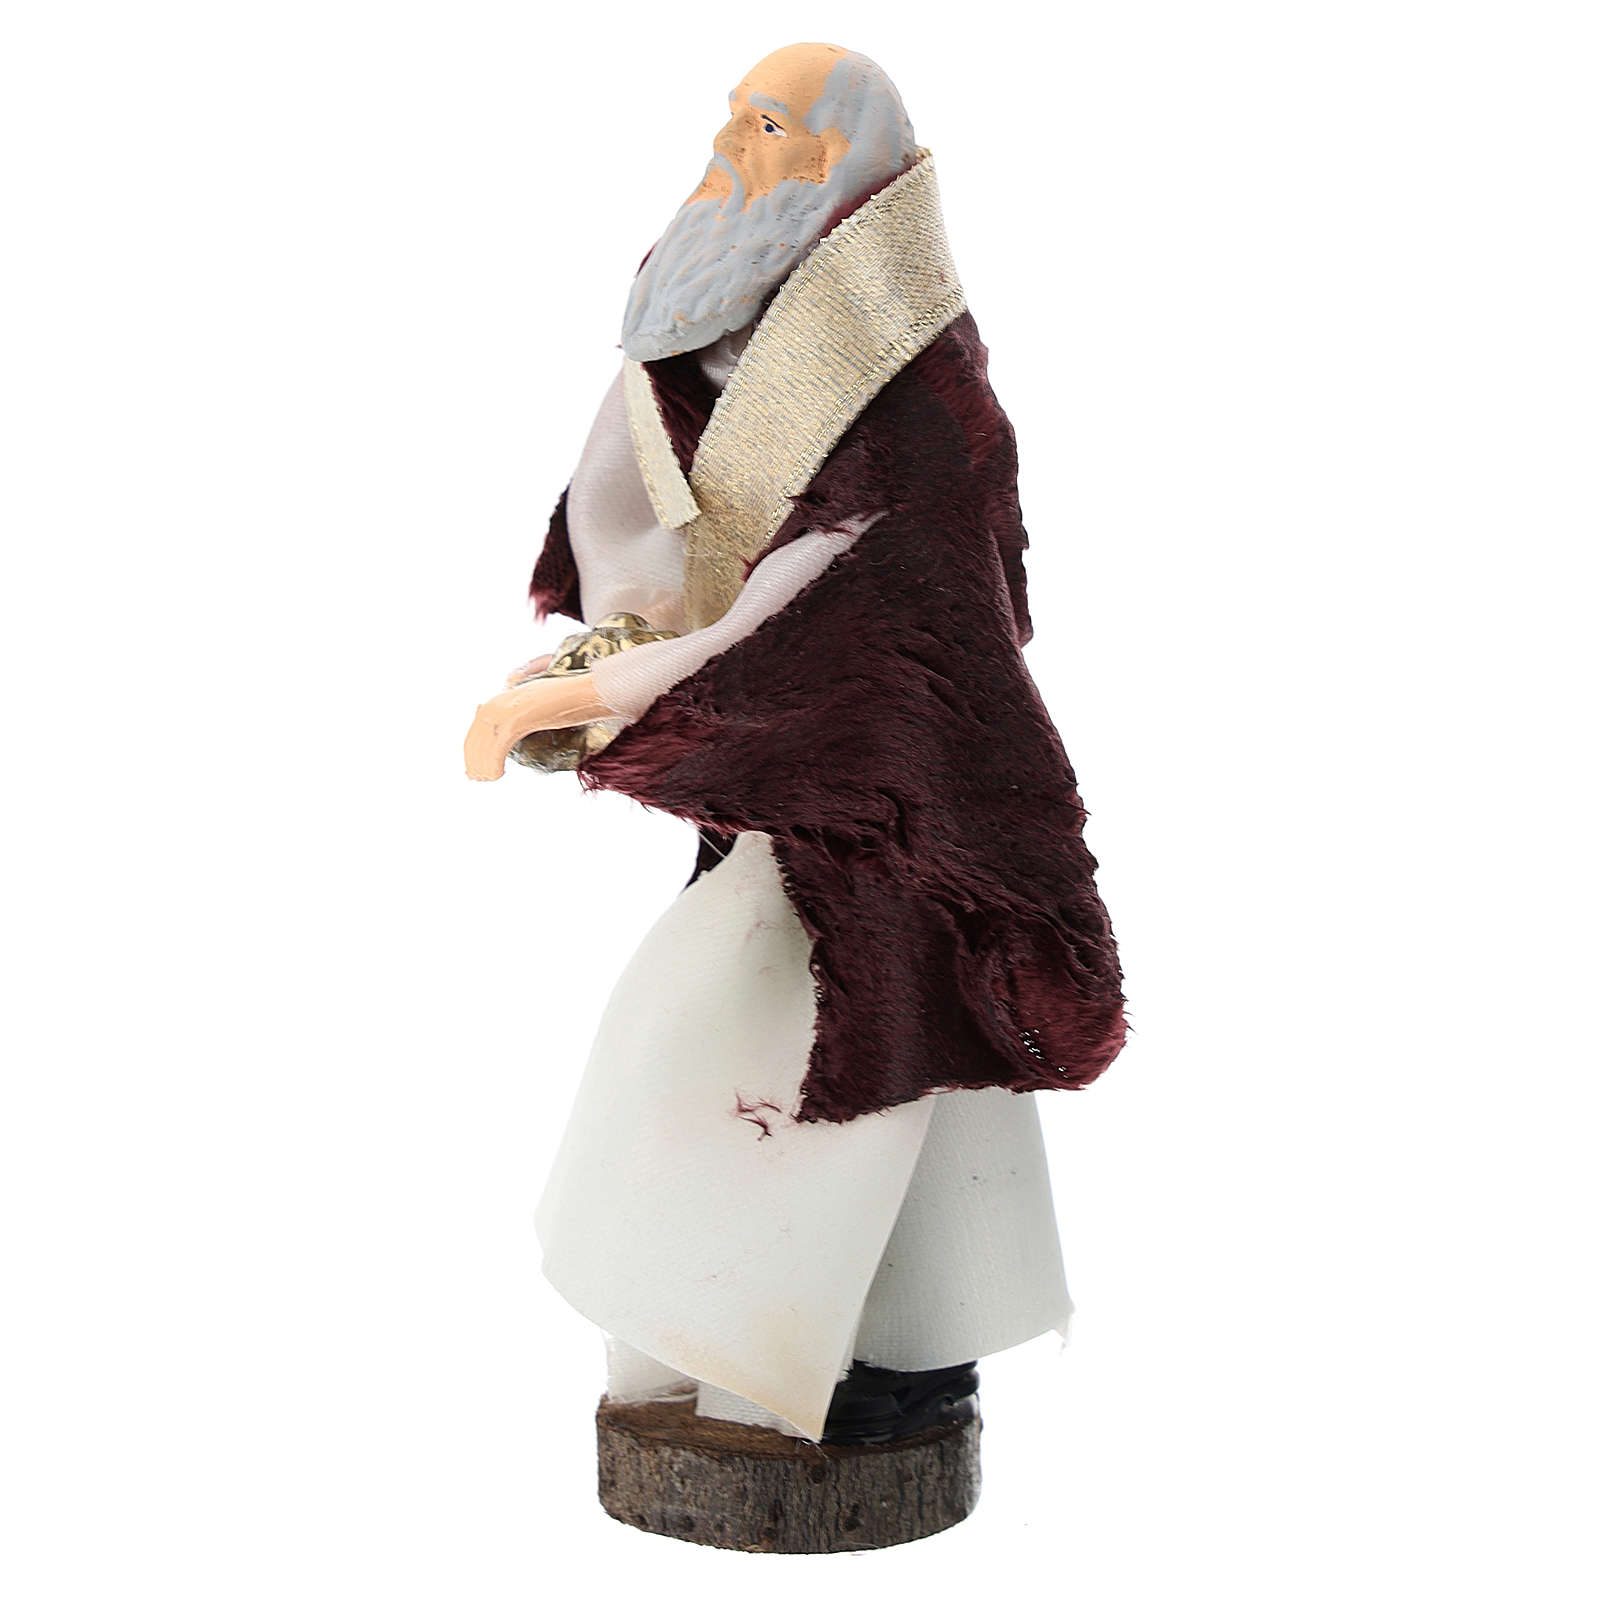 Statue of white king for Nativity scenes of 12 cm in terracotta and plastic 3